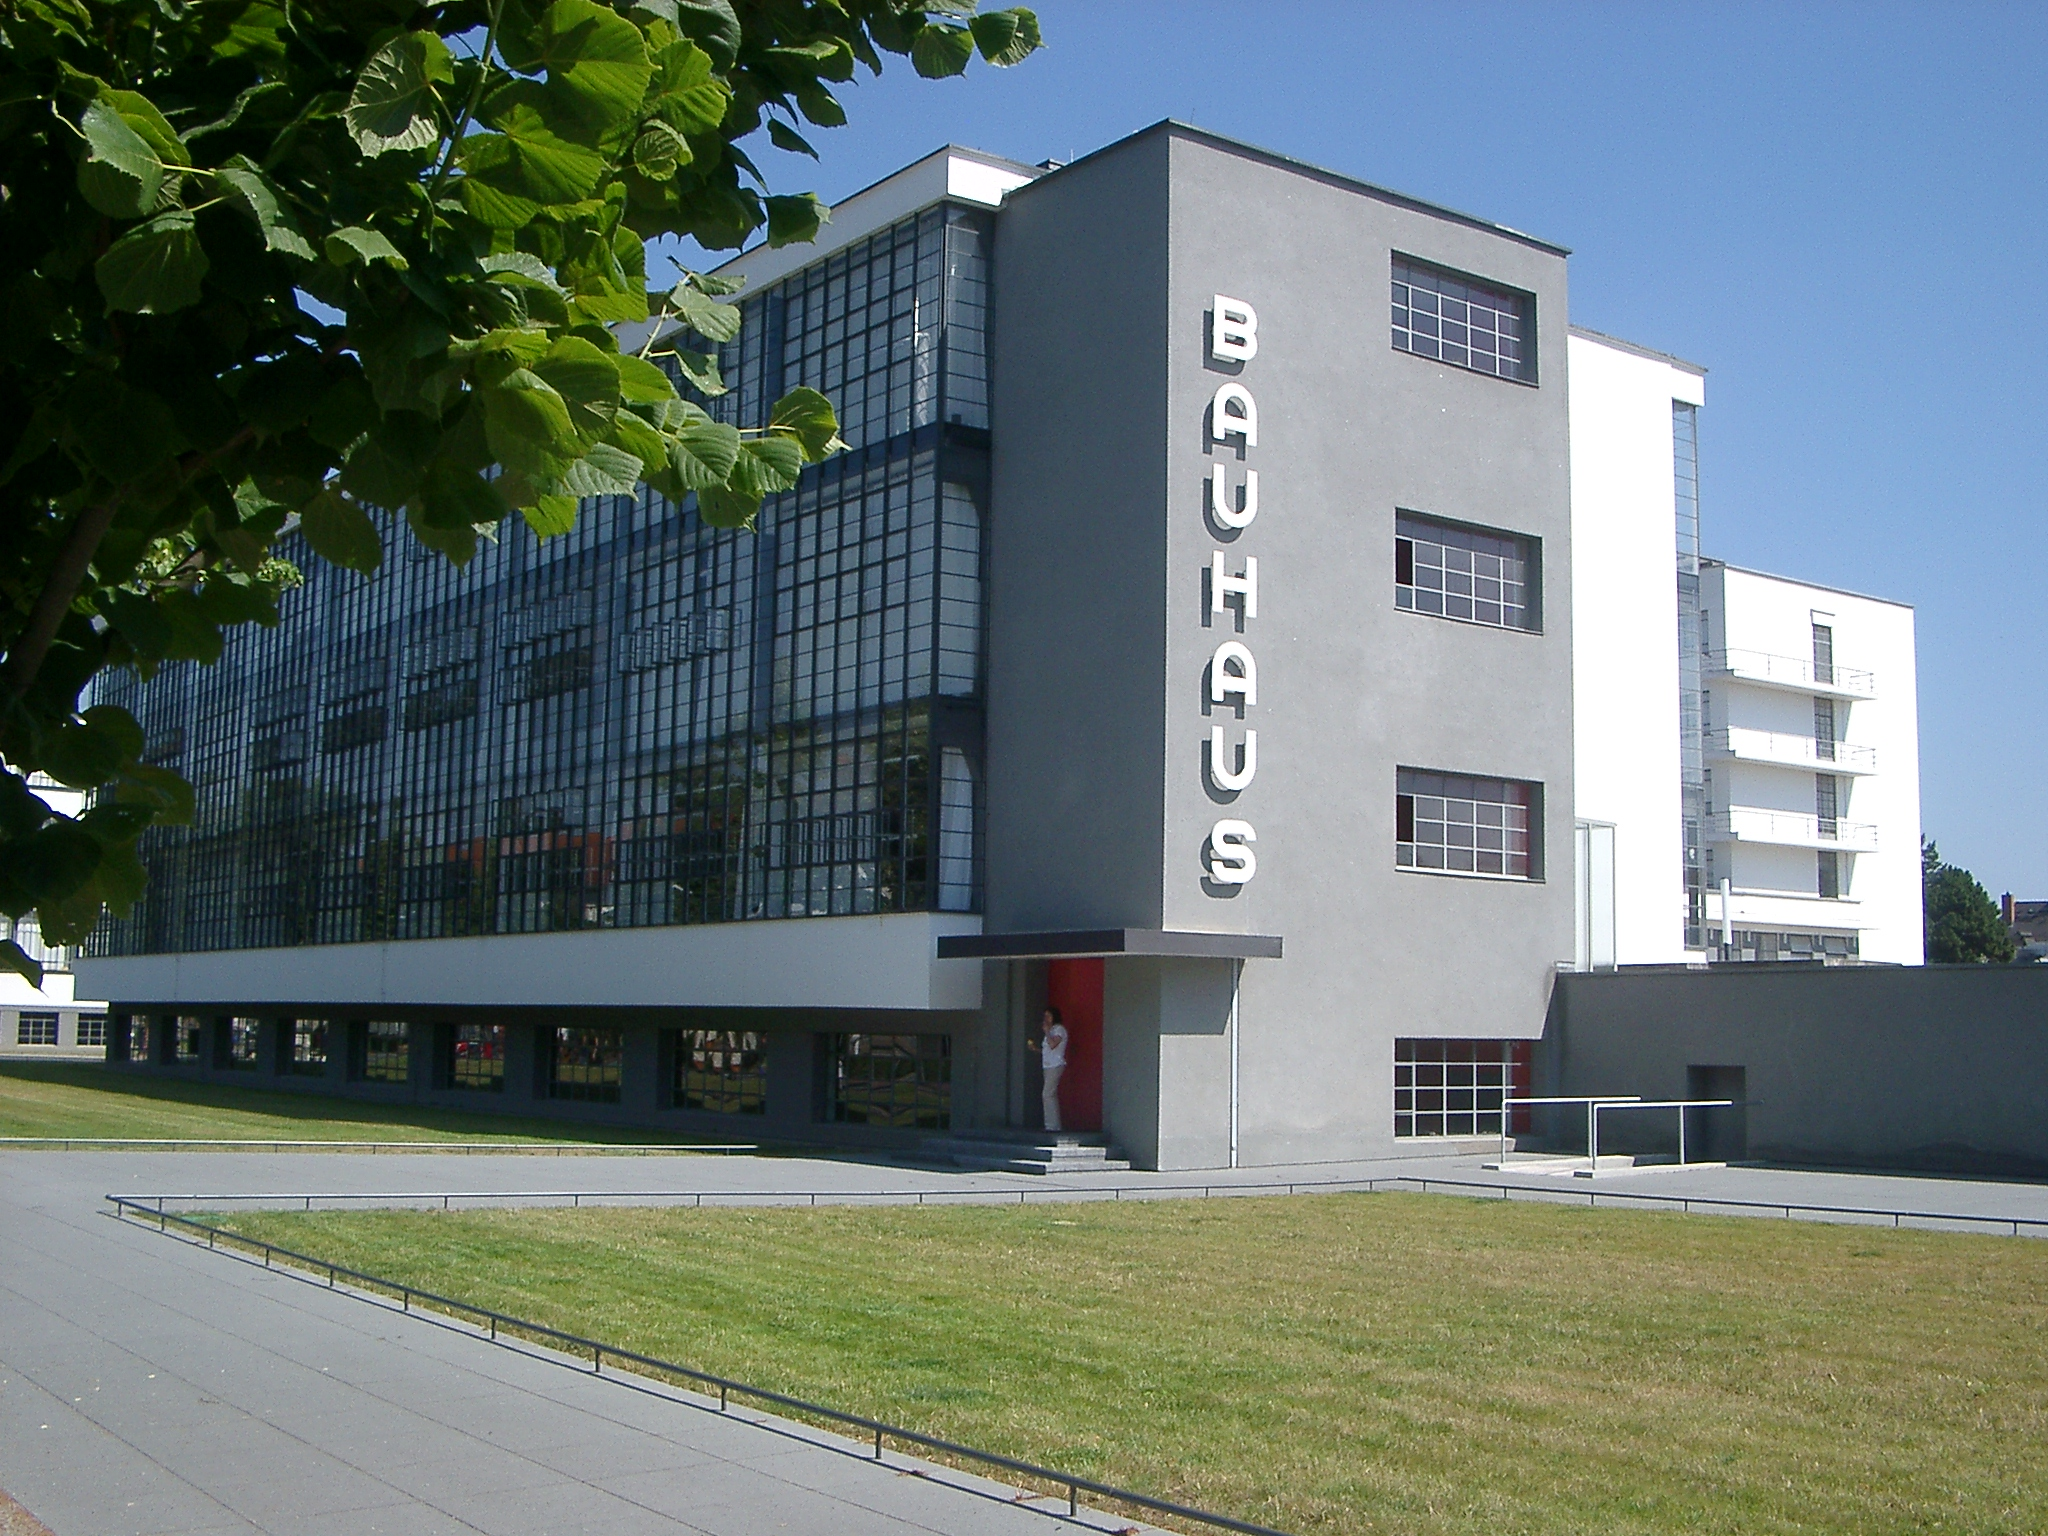 architekturstil bauhaus